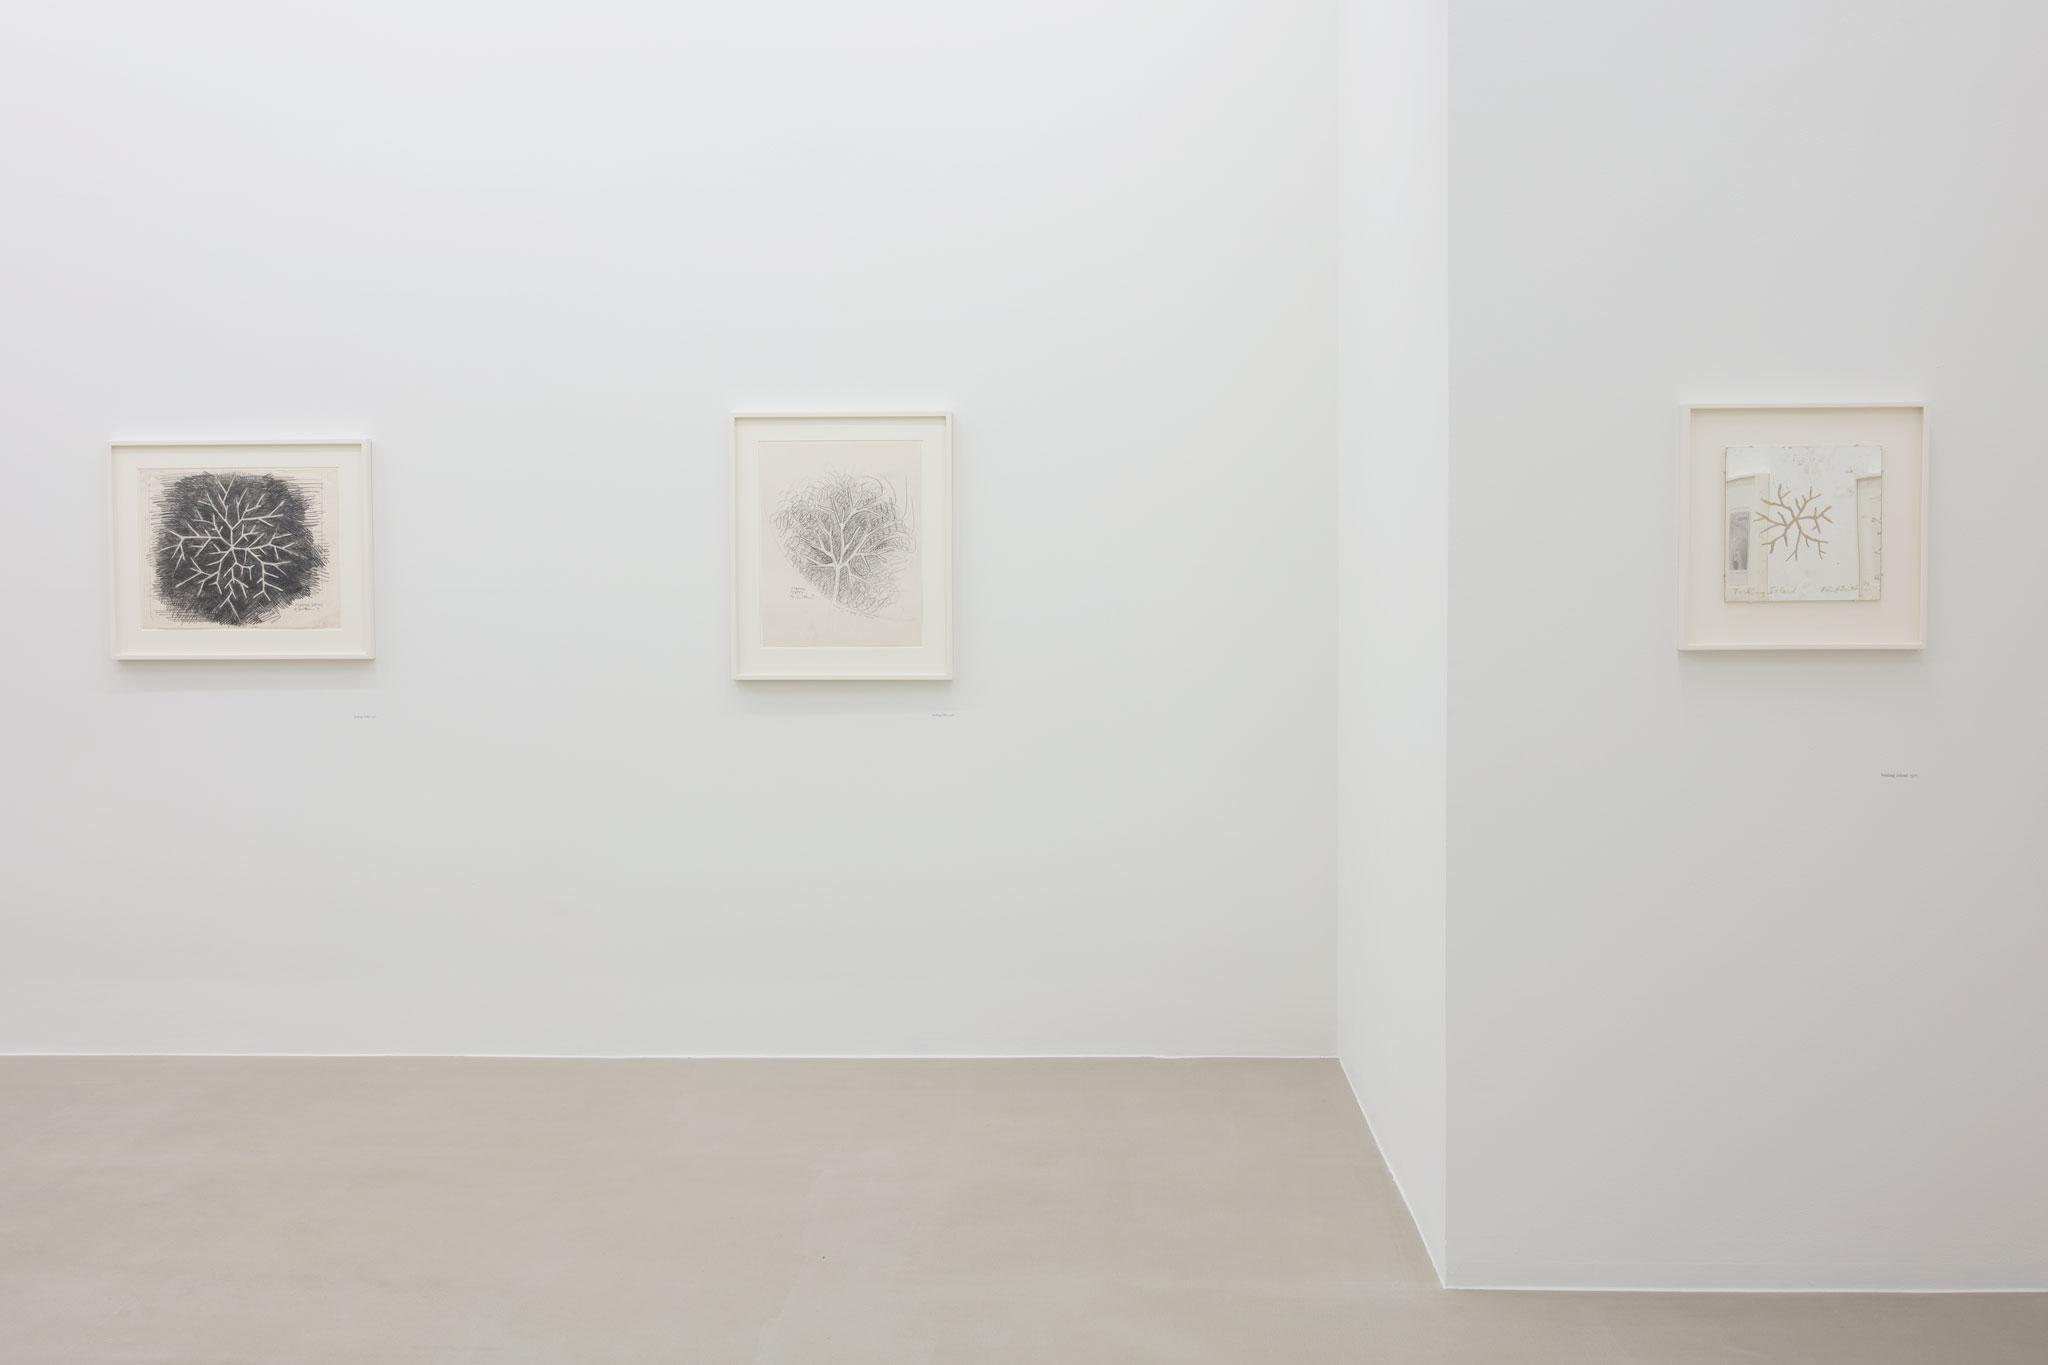 three black and white artworks hanging on the white walls of an art gallery